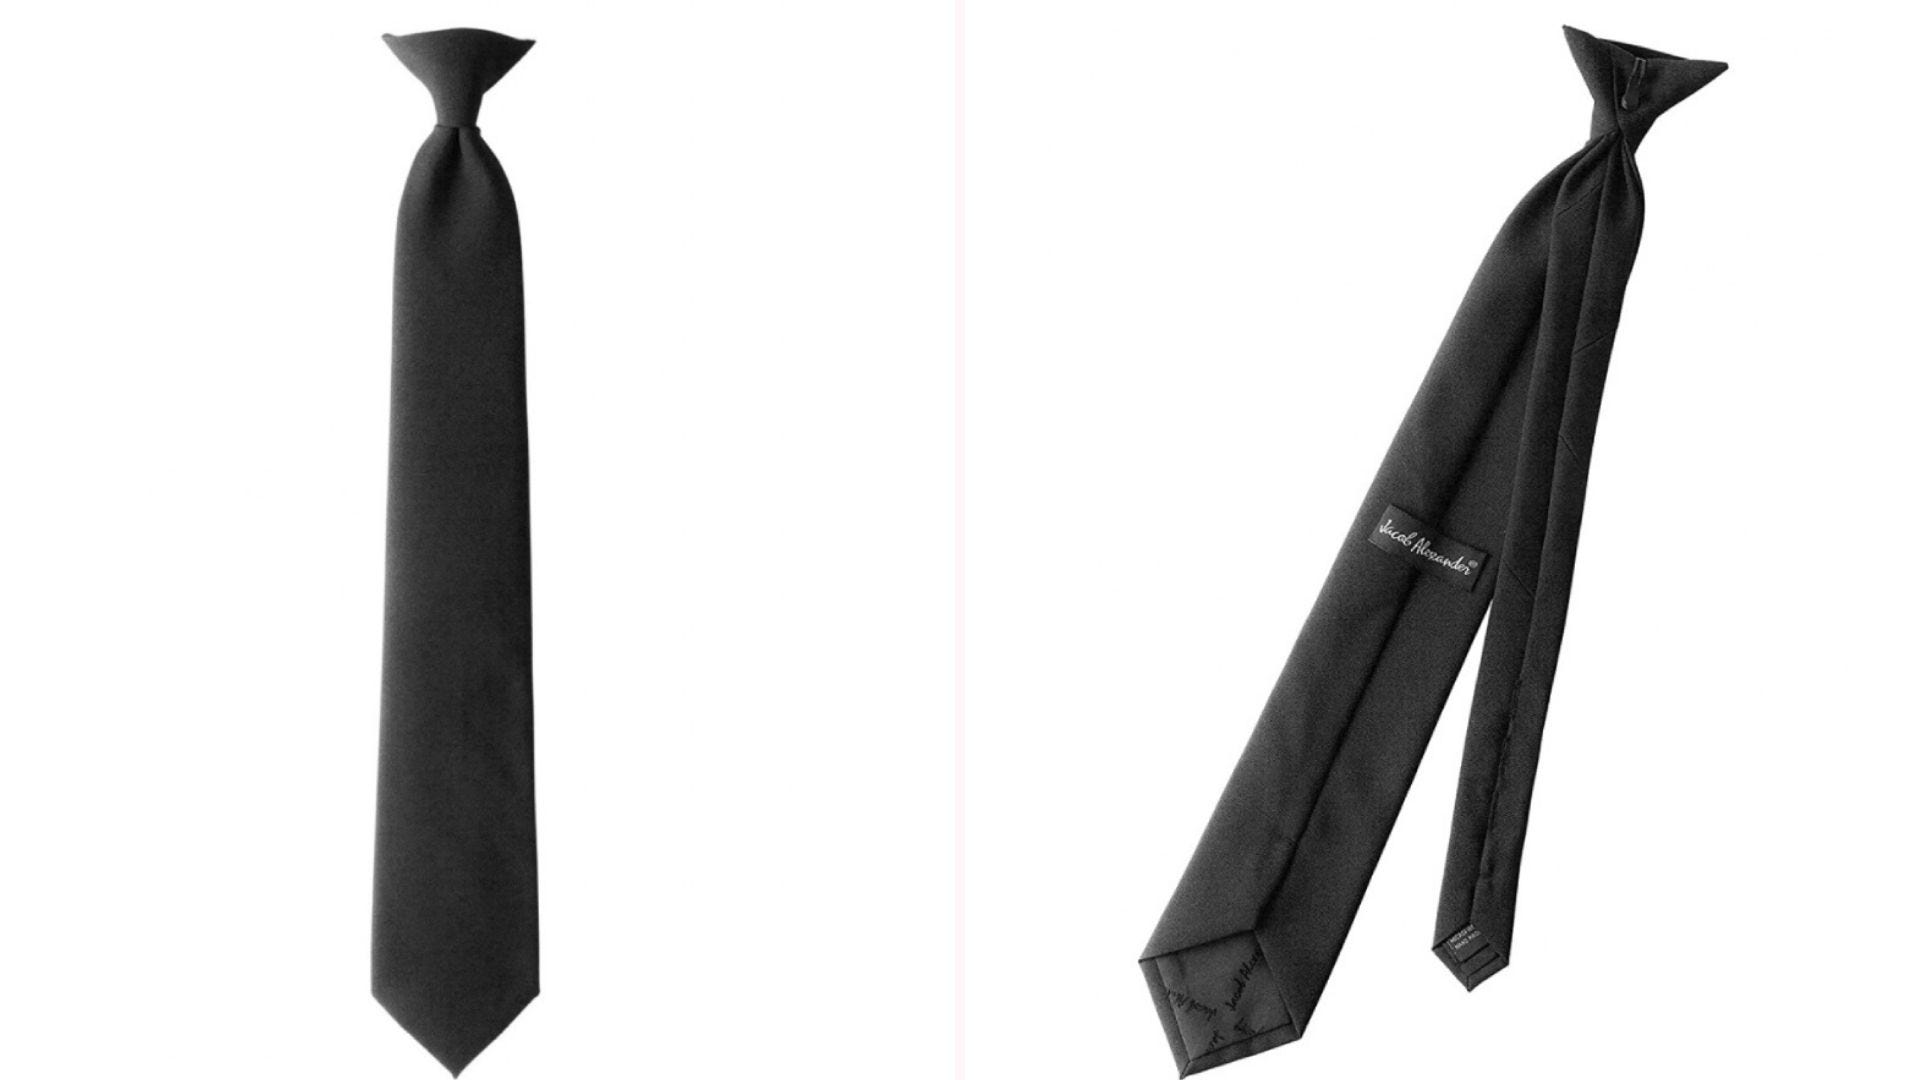 front and back view of a black clip-on necktie